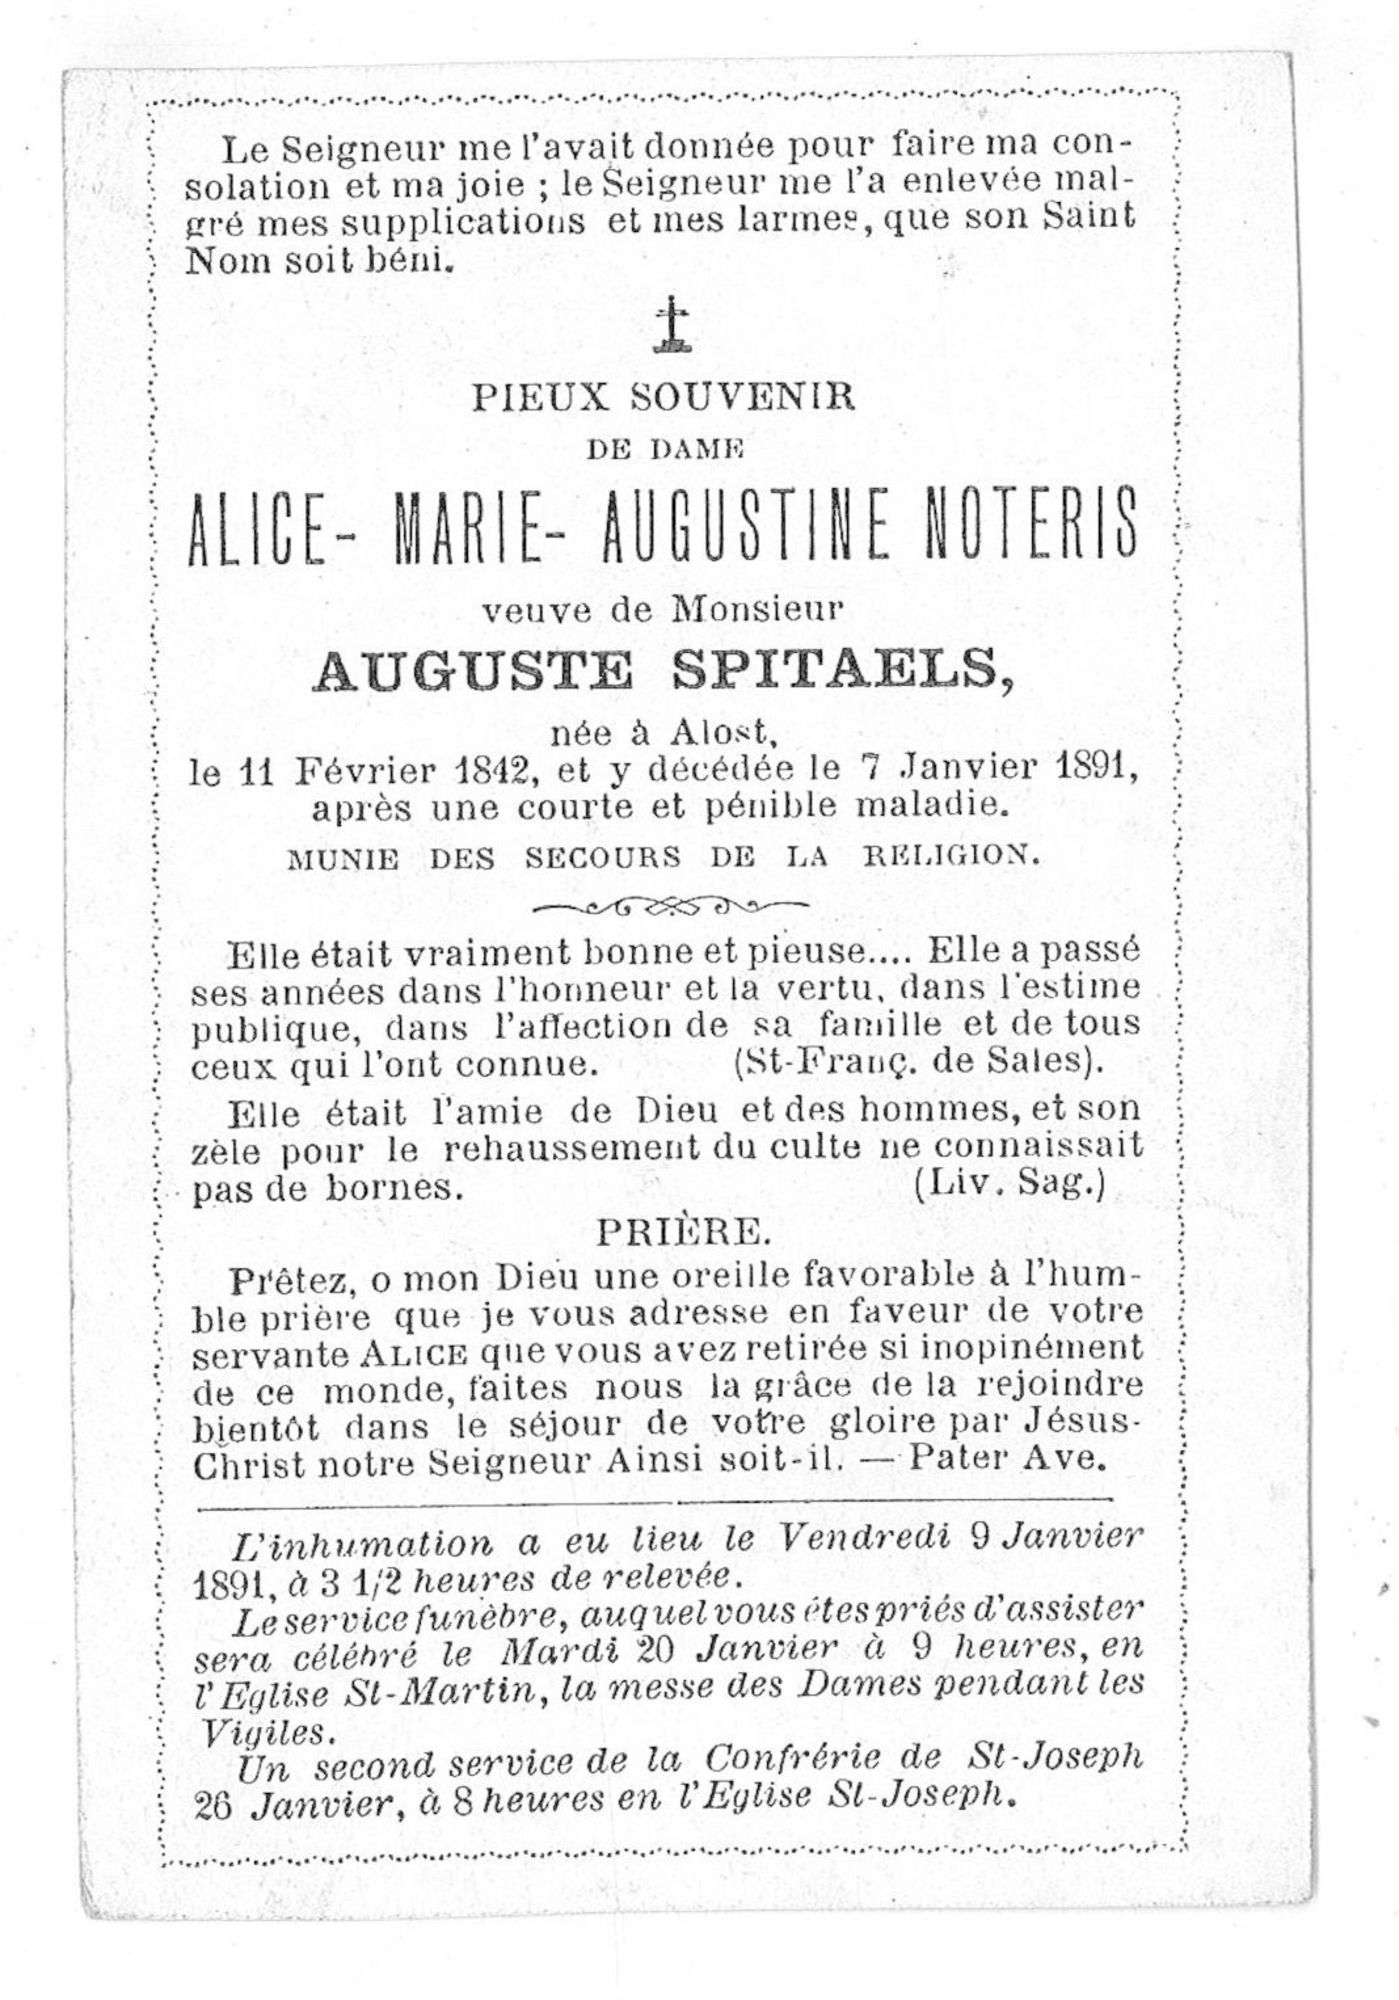 Alice-Marie-Augustine Noteris